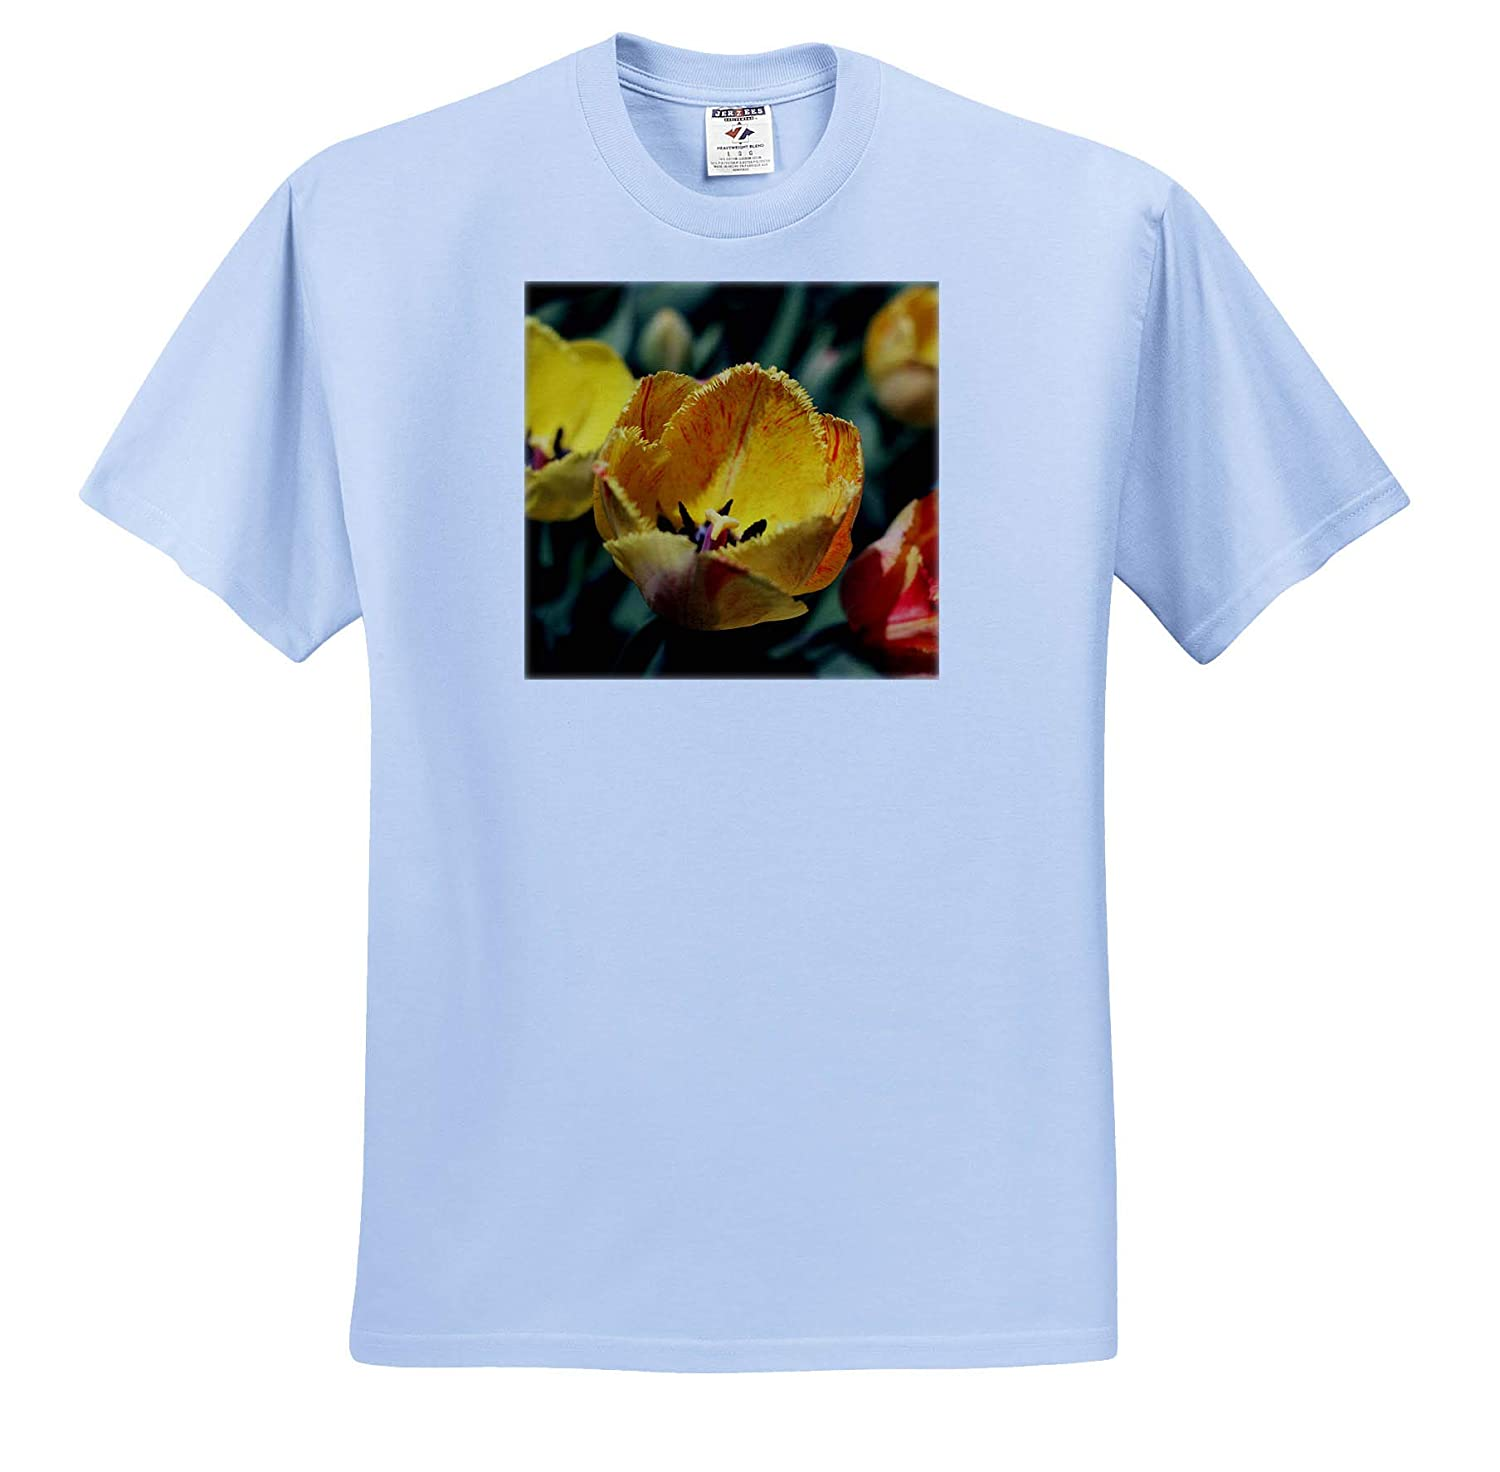 Flowers ts/_308740 - Adult T-Shirt XL Photograph of Elegant Fringed Yellow Tulips with red Stripes 3dRose Stamp City